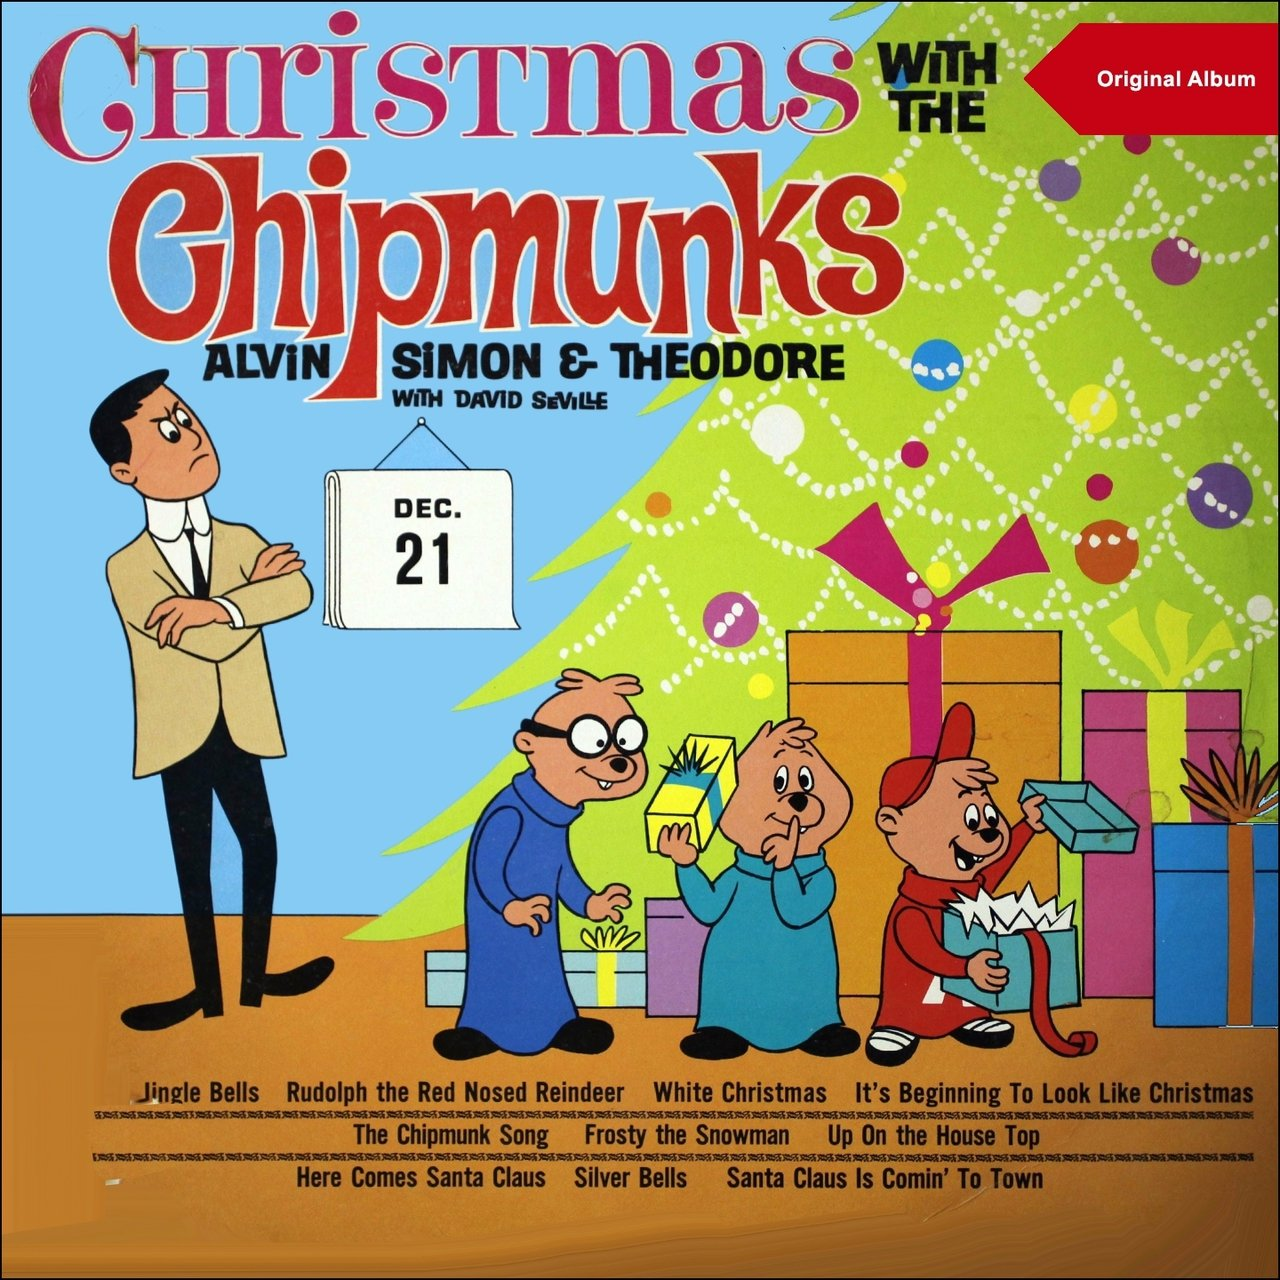 TIDAL: Listen to Christmas with Chipmunks on TIDAL